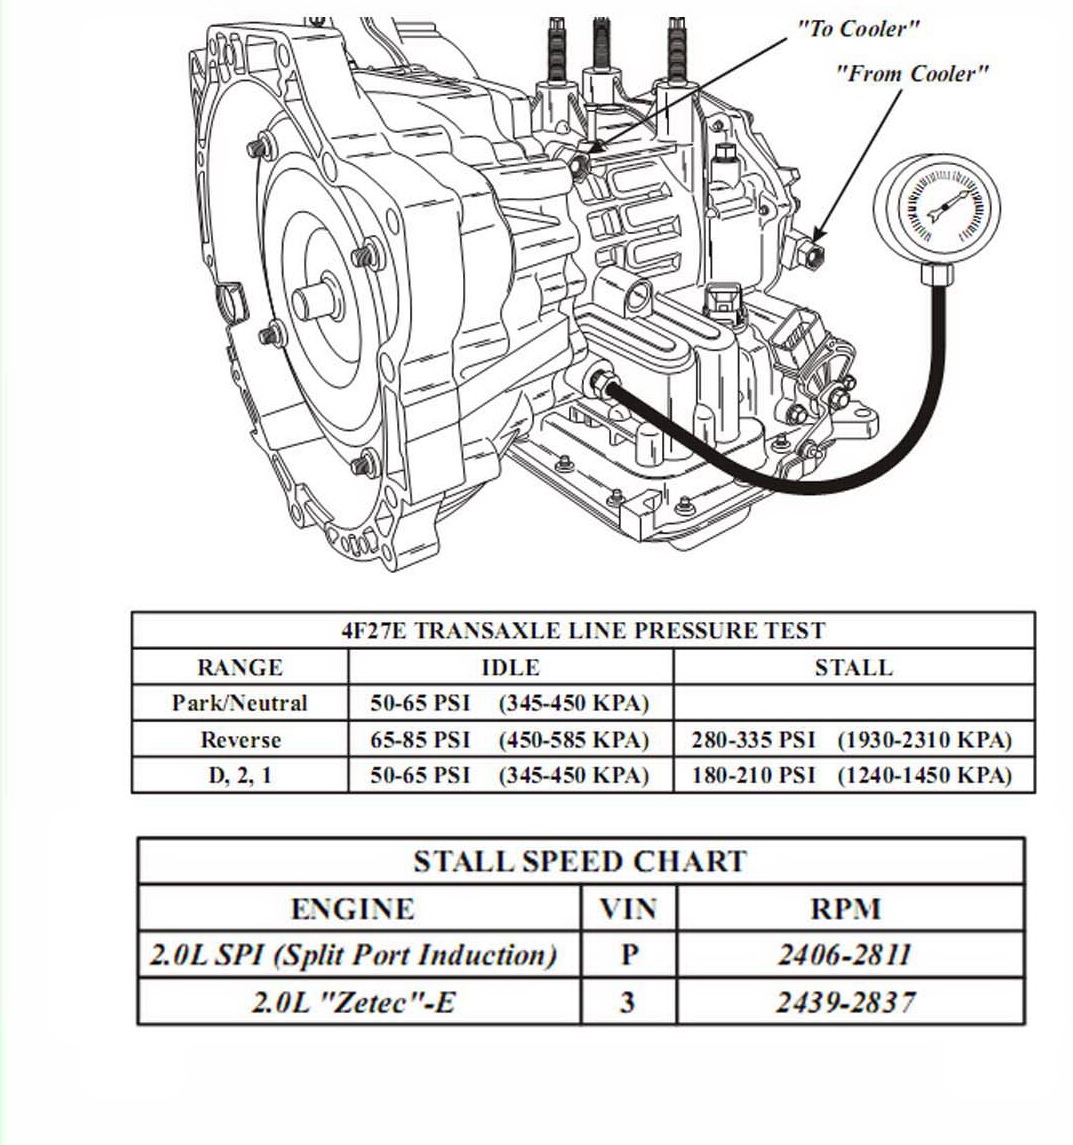 Egr Valve Problems Symptoms Testing Replacement Manual Guide